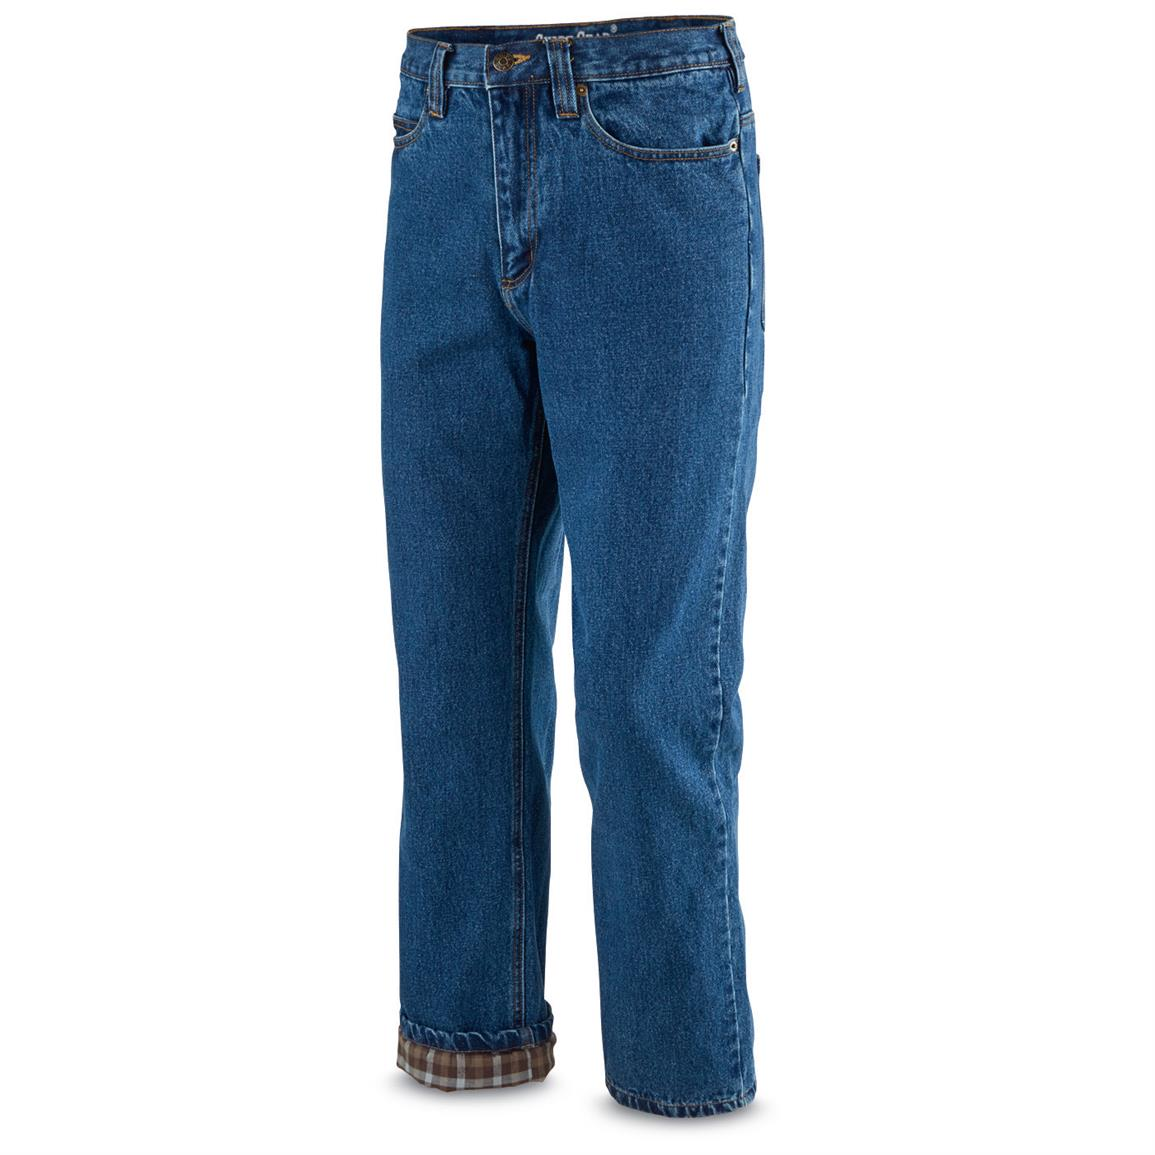 Guide Gear Men's Flannel-Lined Denim Jeans, Stonewash